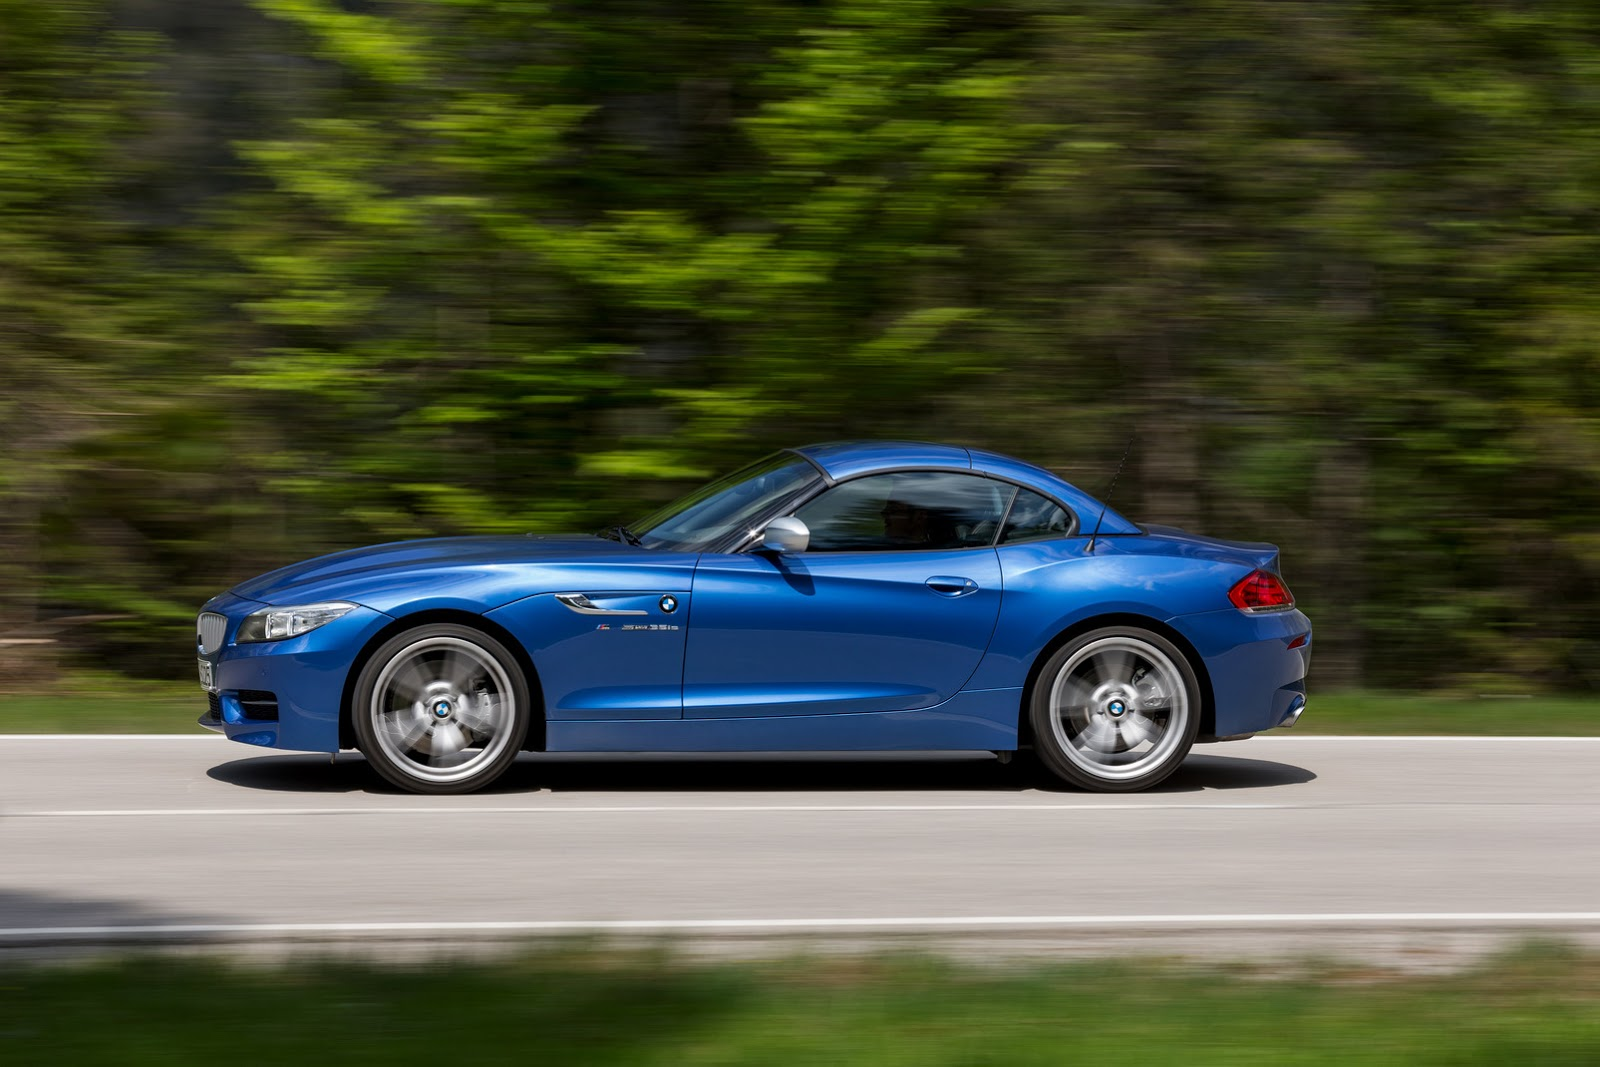 Bmw Z4 Gets Estoril Blue Metallic For The First Time 64